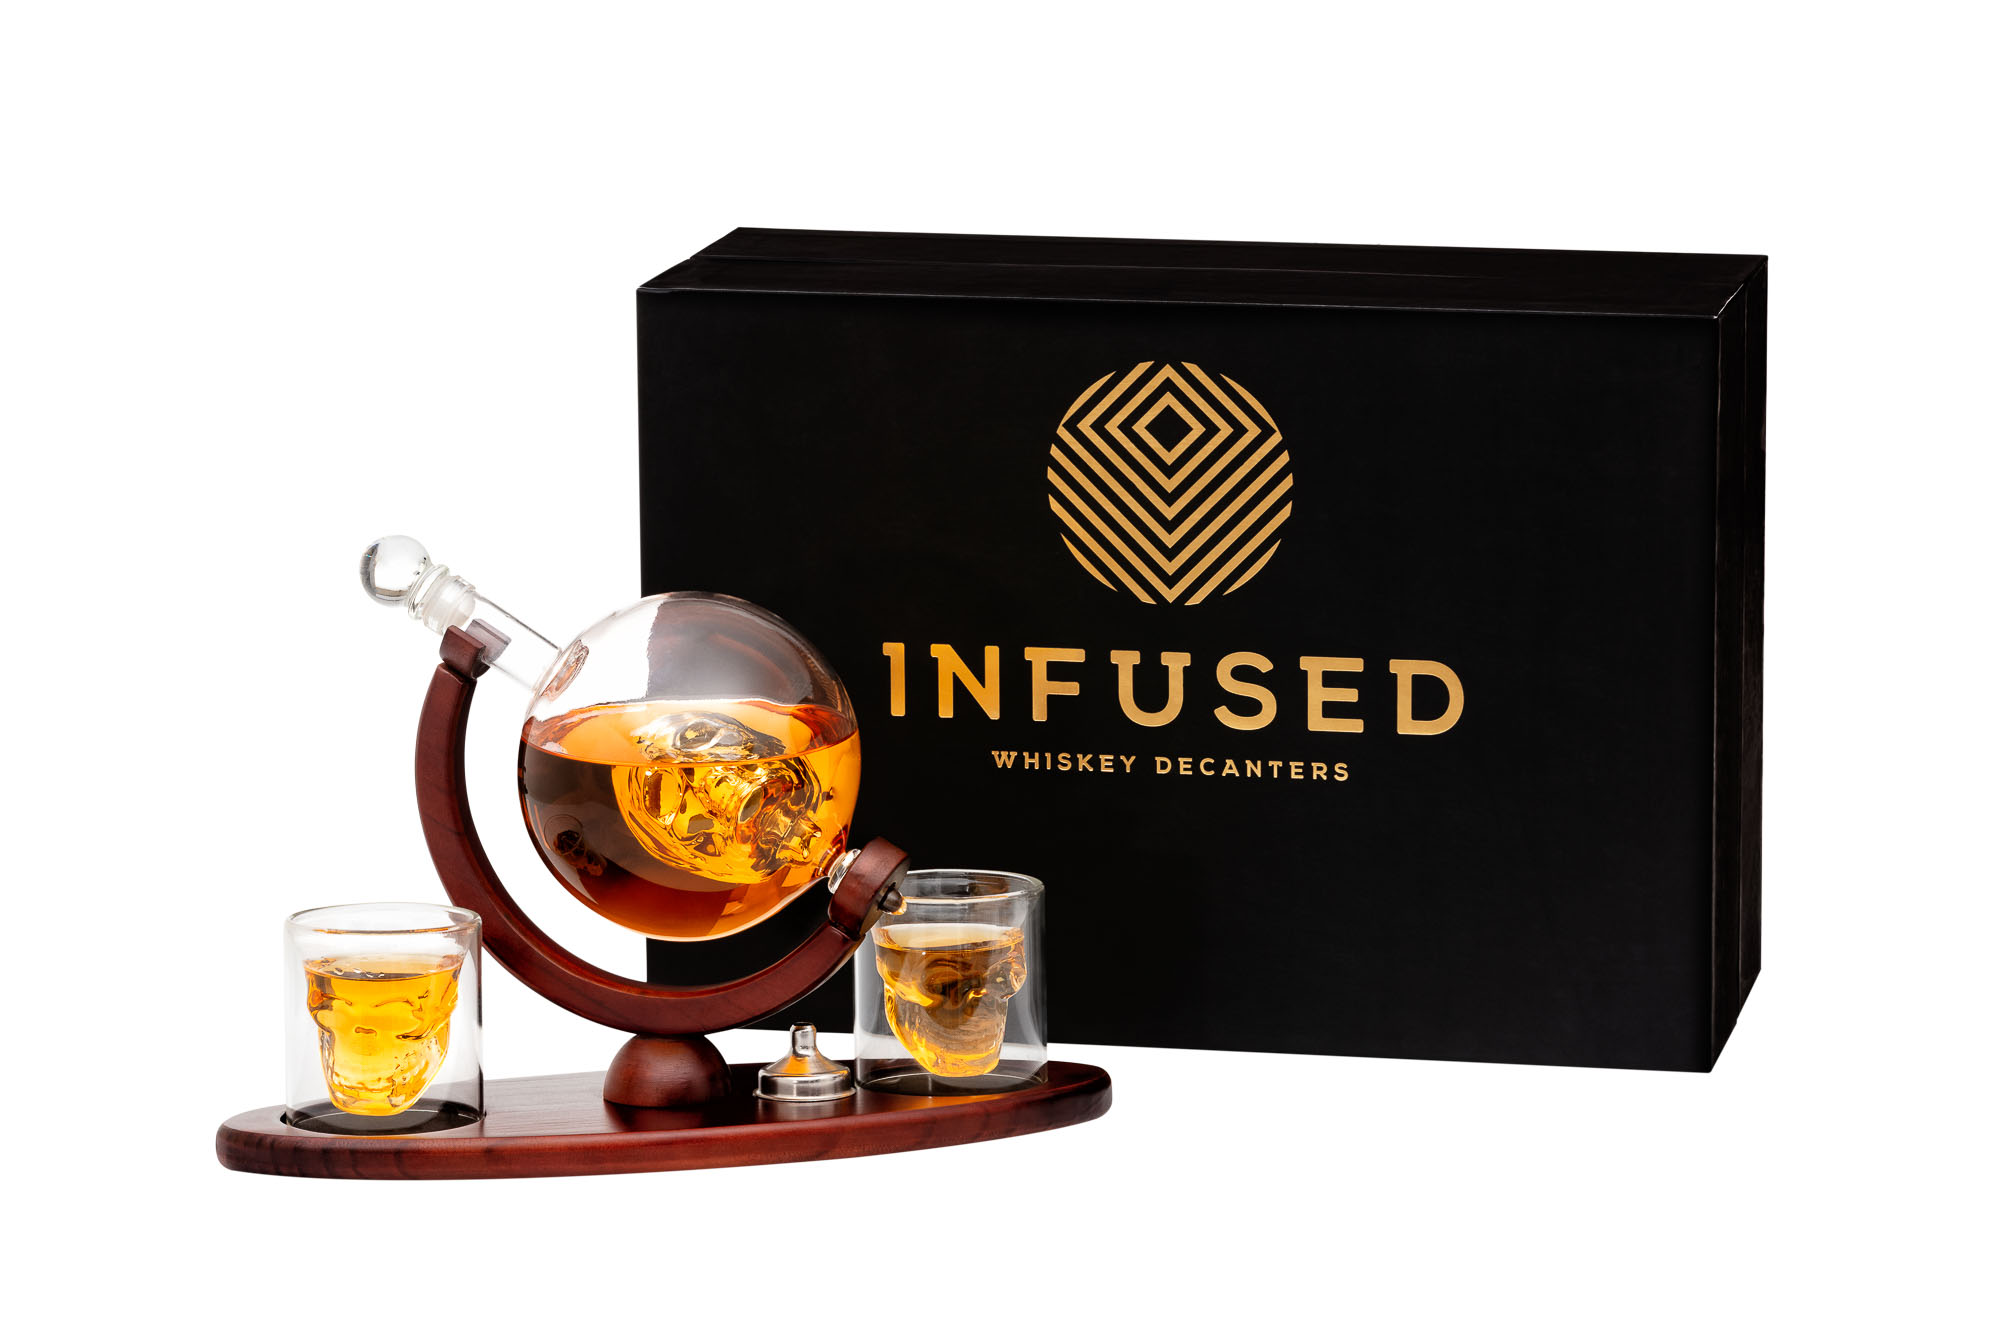 Infused Main Amazon Photo with Whisky - Sample of Product Photography for Amazon